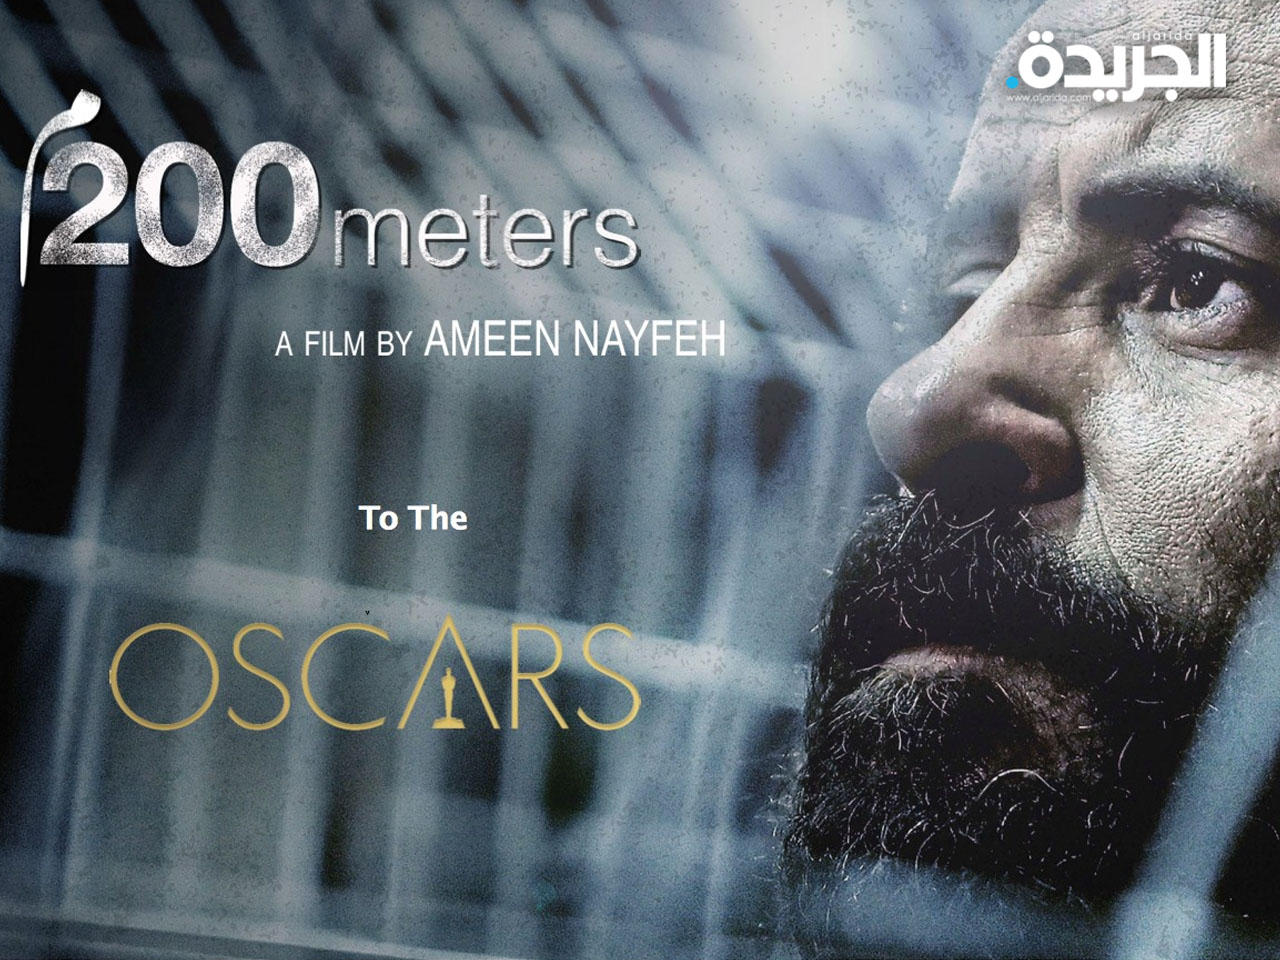 """Jordan nominates """"200 meters"""" for the Academy Award competition"""